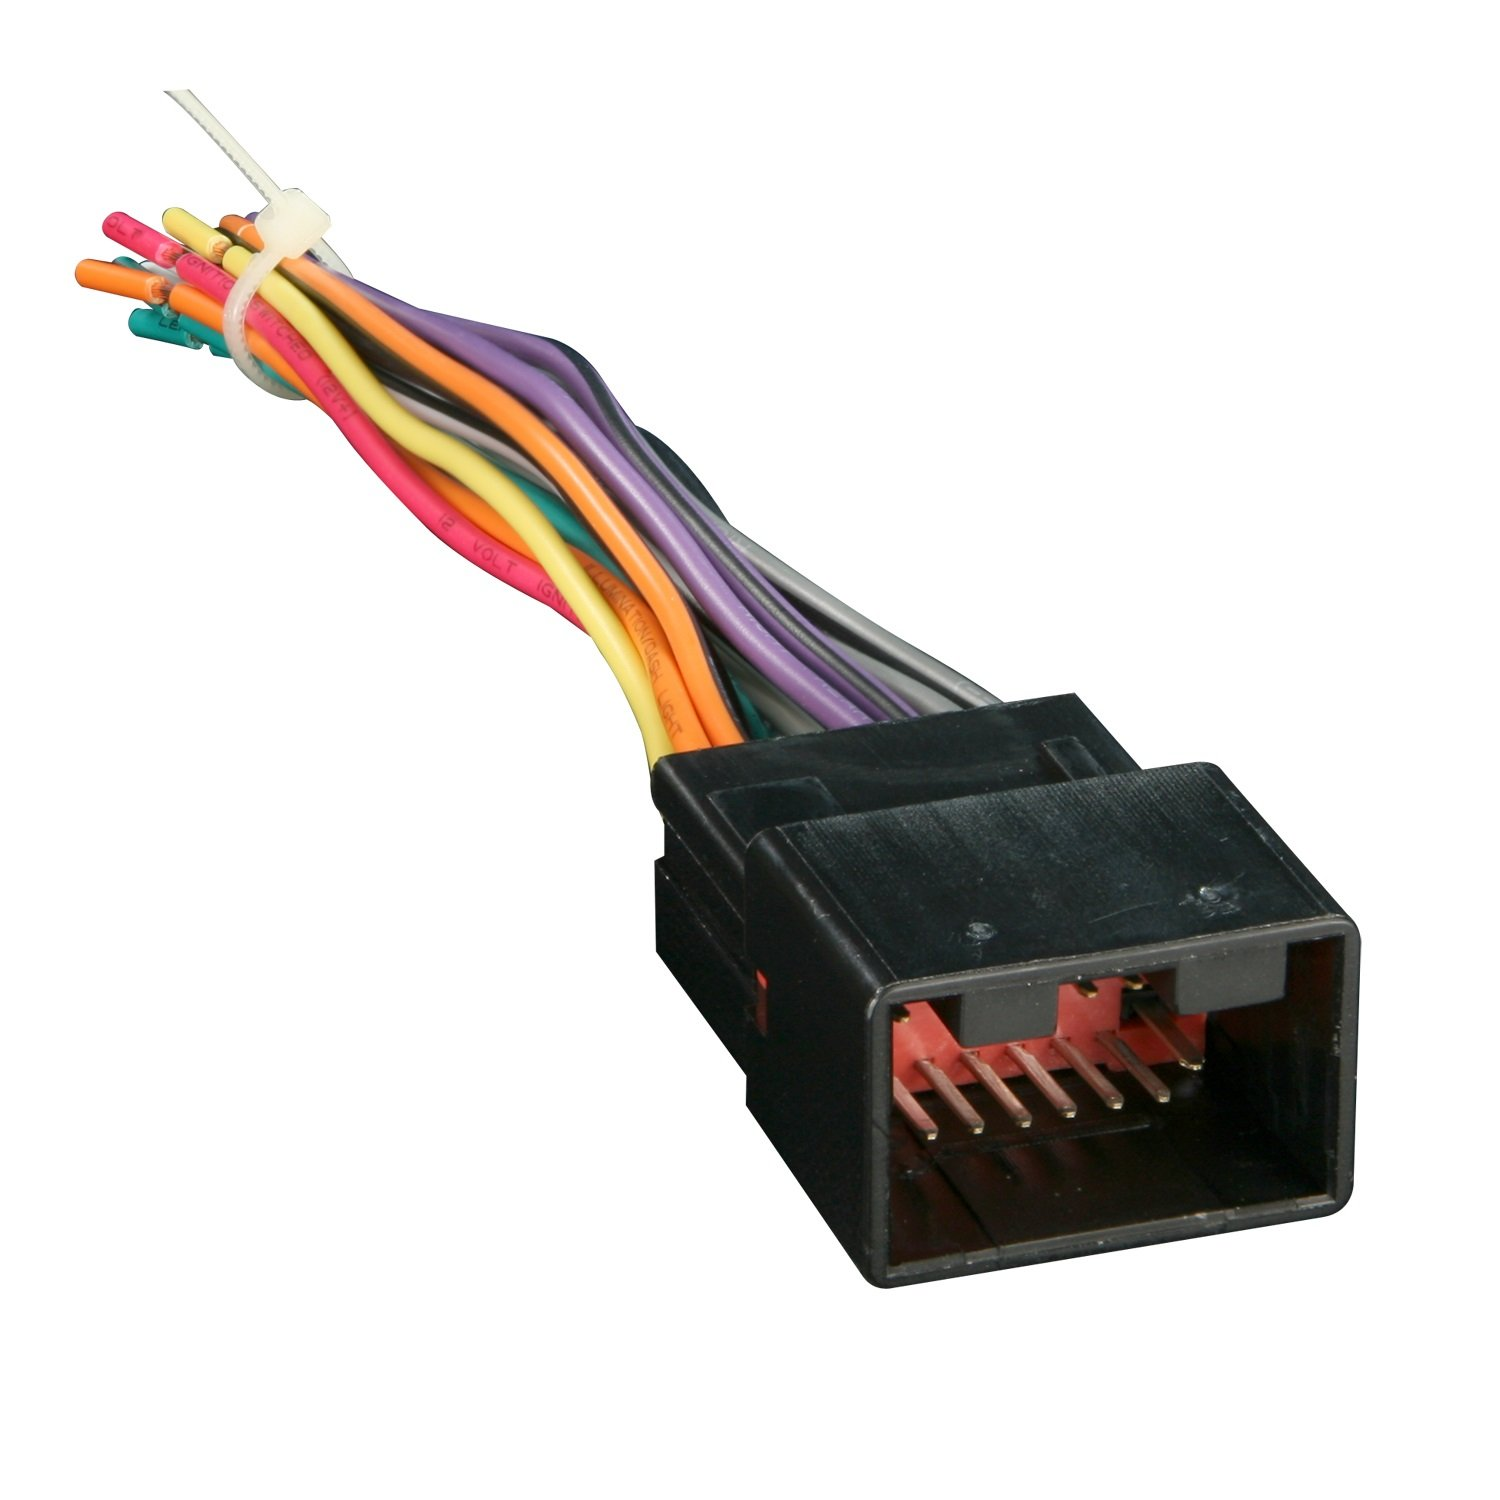 61X4UocRDeL._SL1500_ amazon com wiring harnesses electrical automotive wiring harness parts at bayanpartner.co